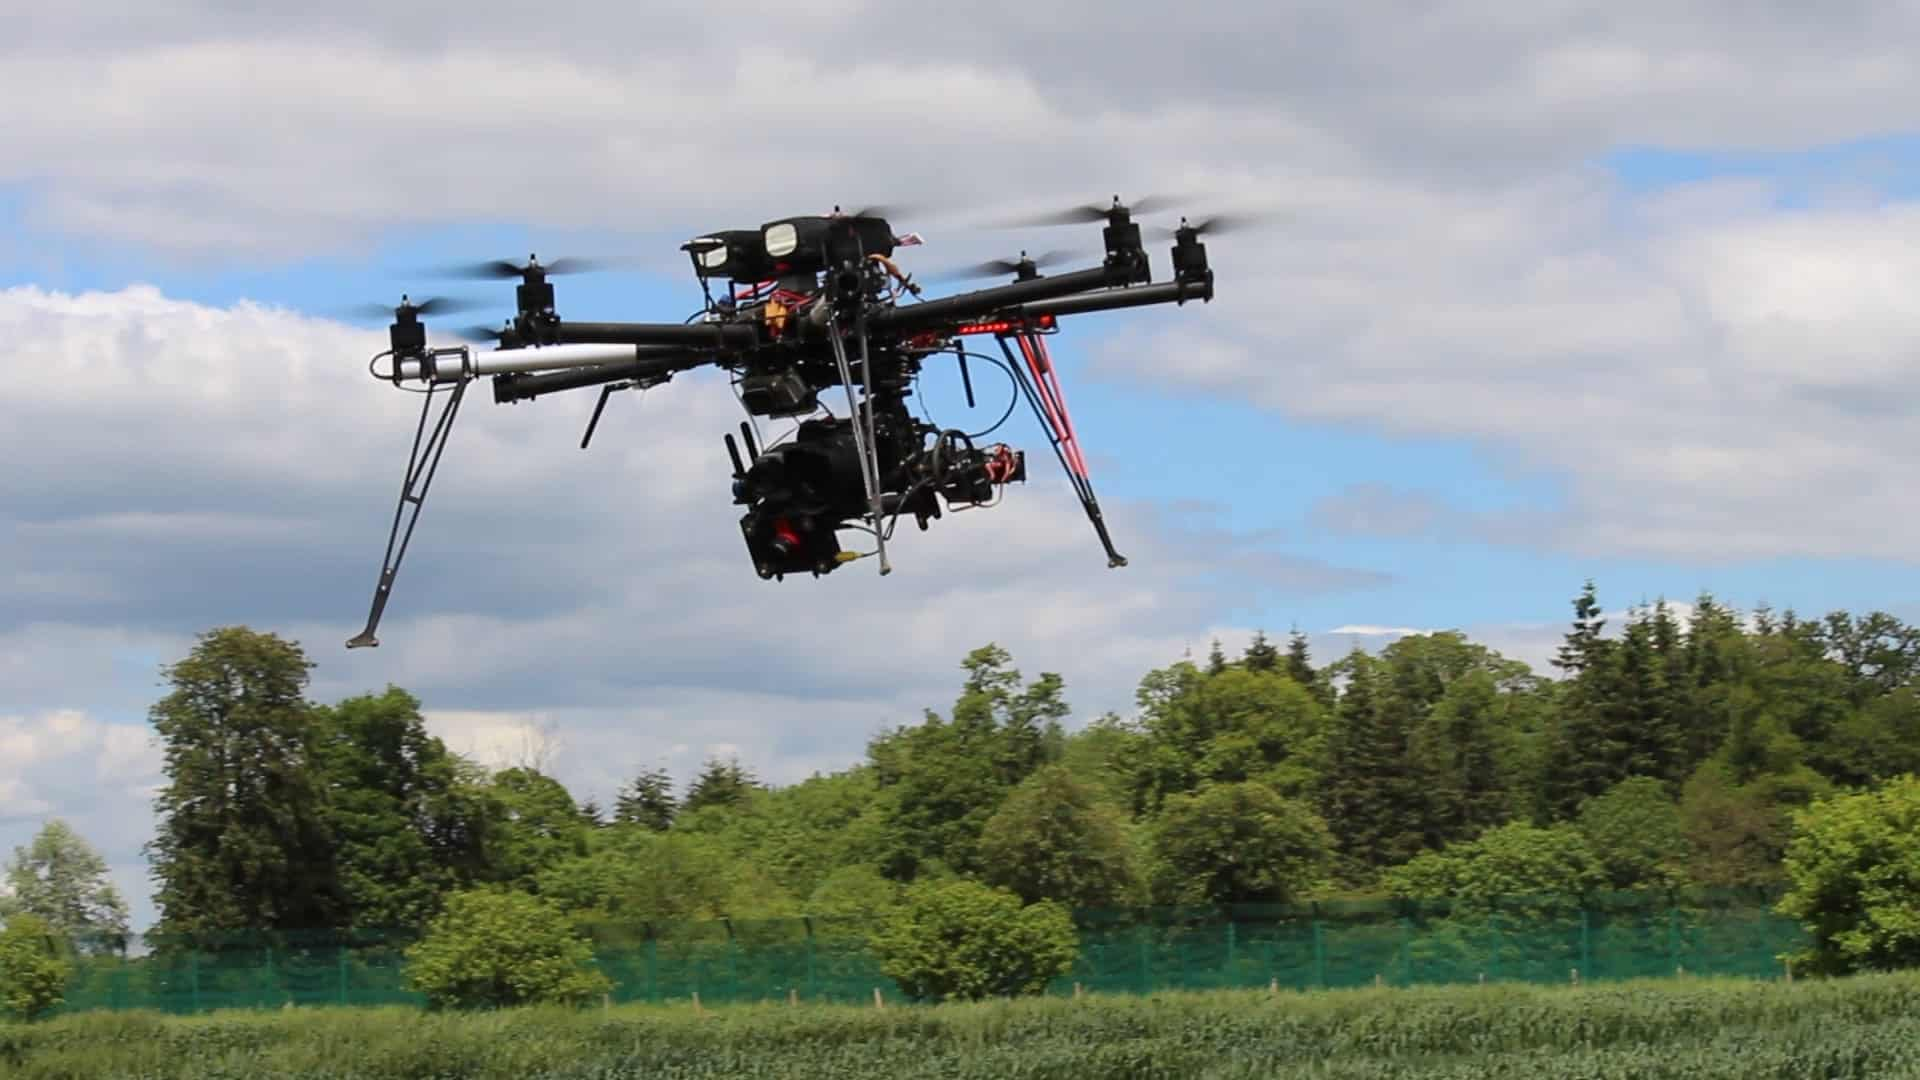 Experimental Octocopter Drone for Agricultural Research